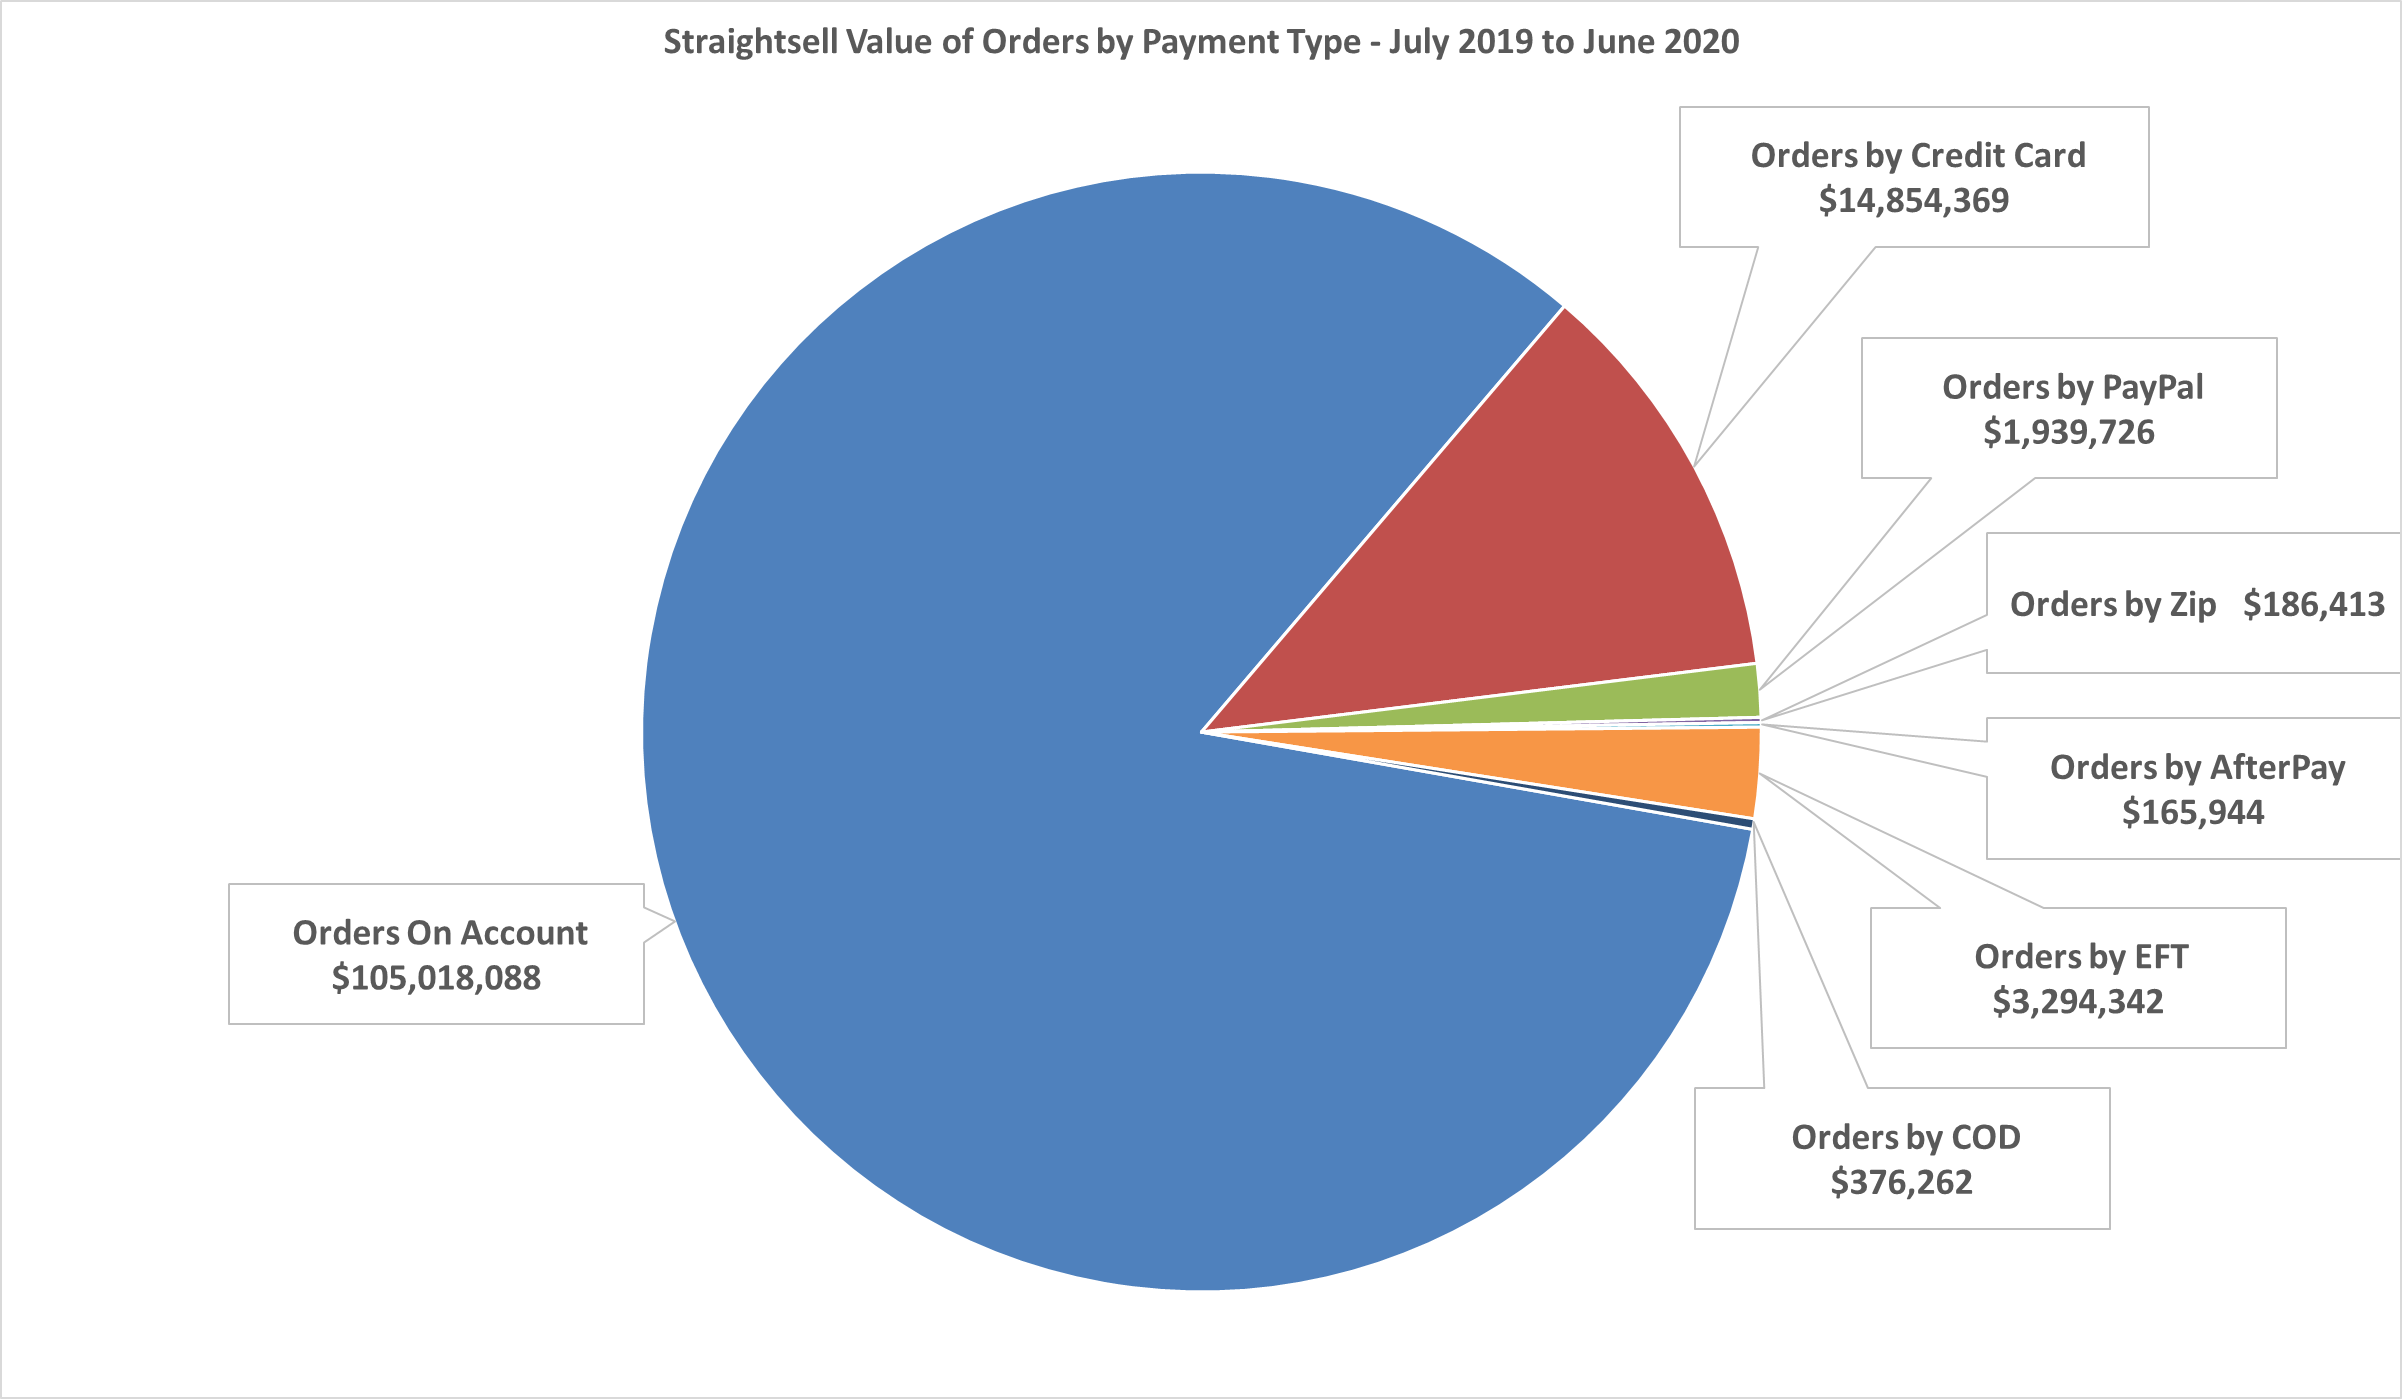 Straightsell Value of Orders by Payment Type - July 2019 thru June 2020